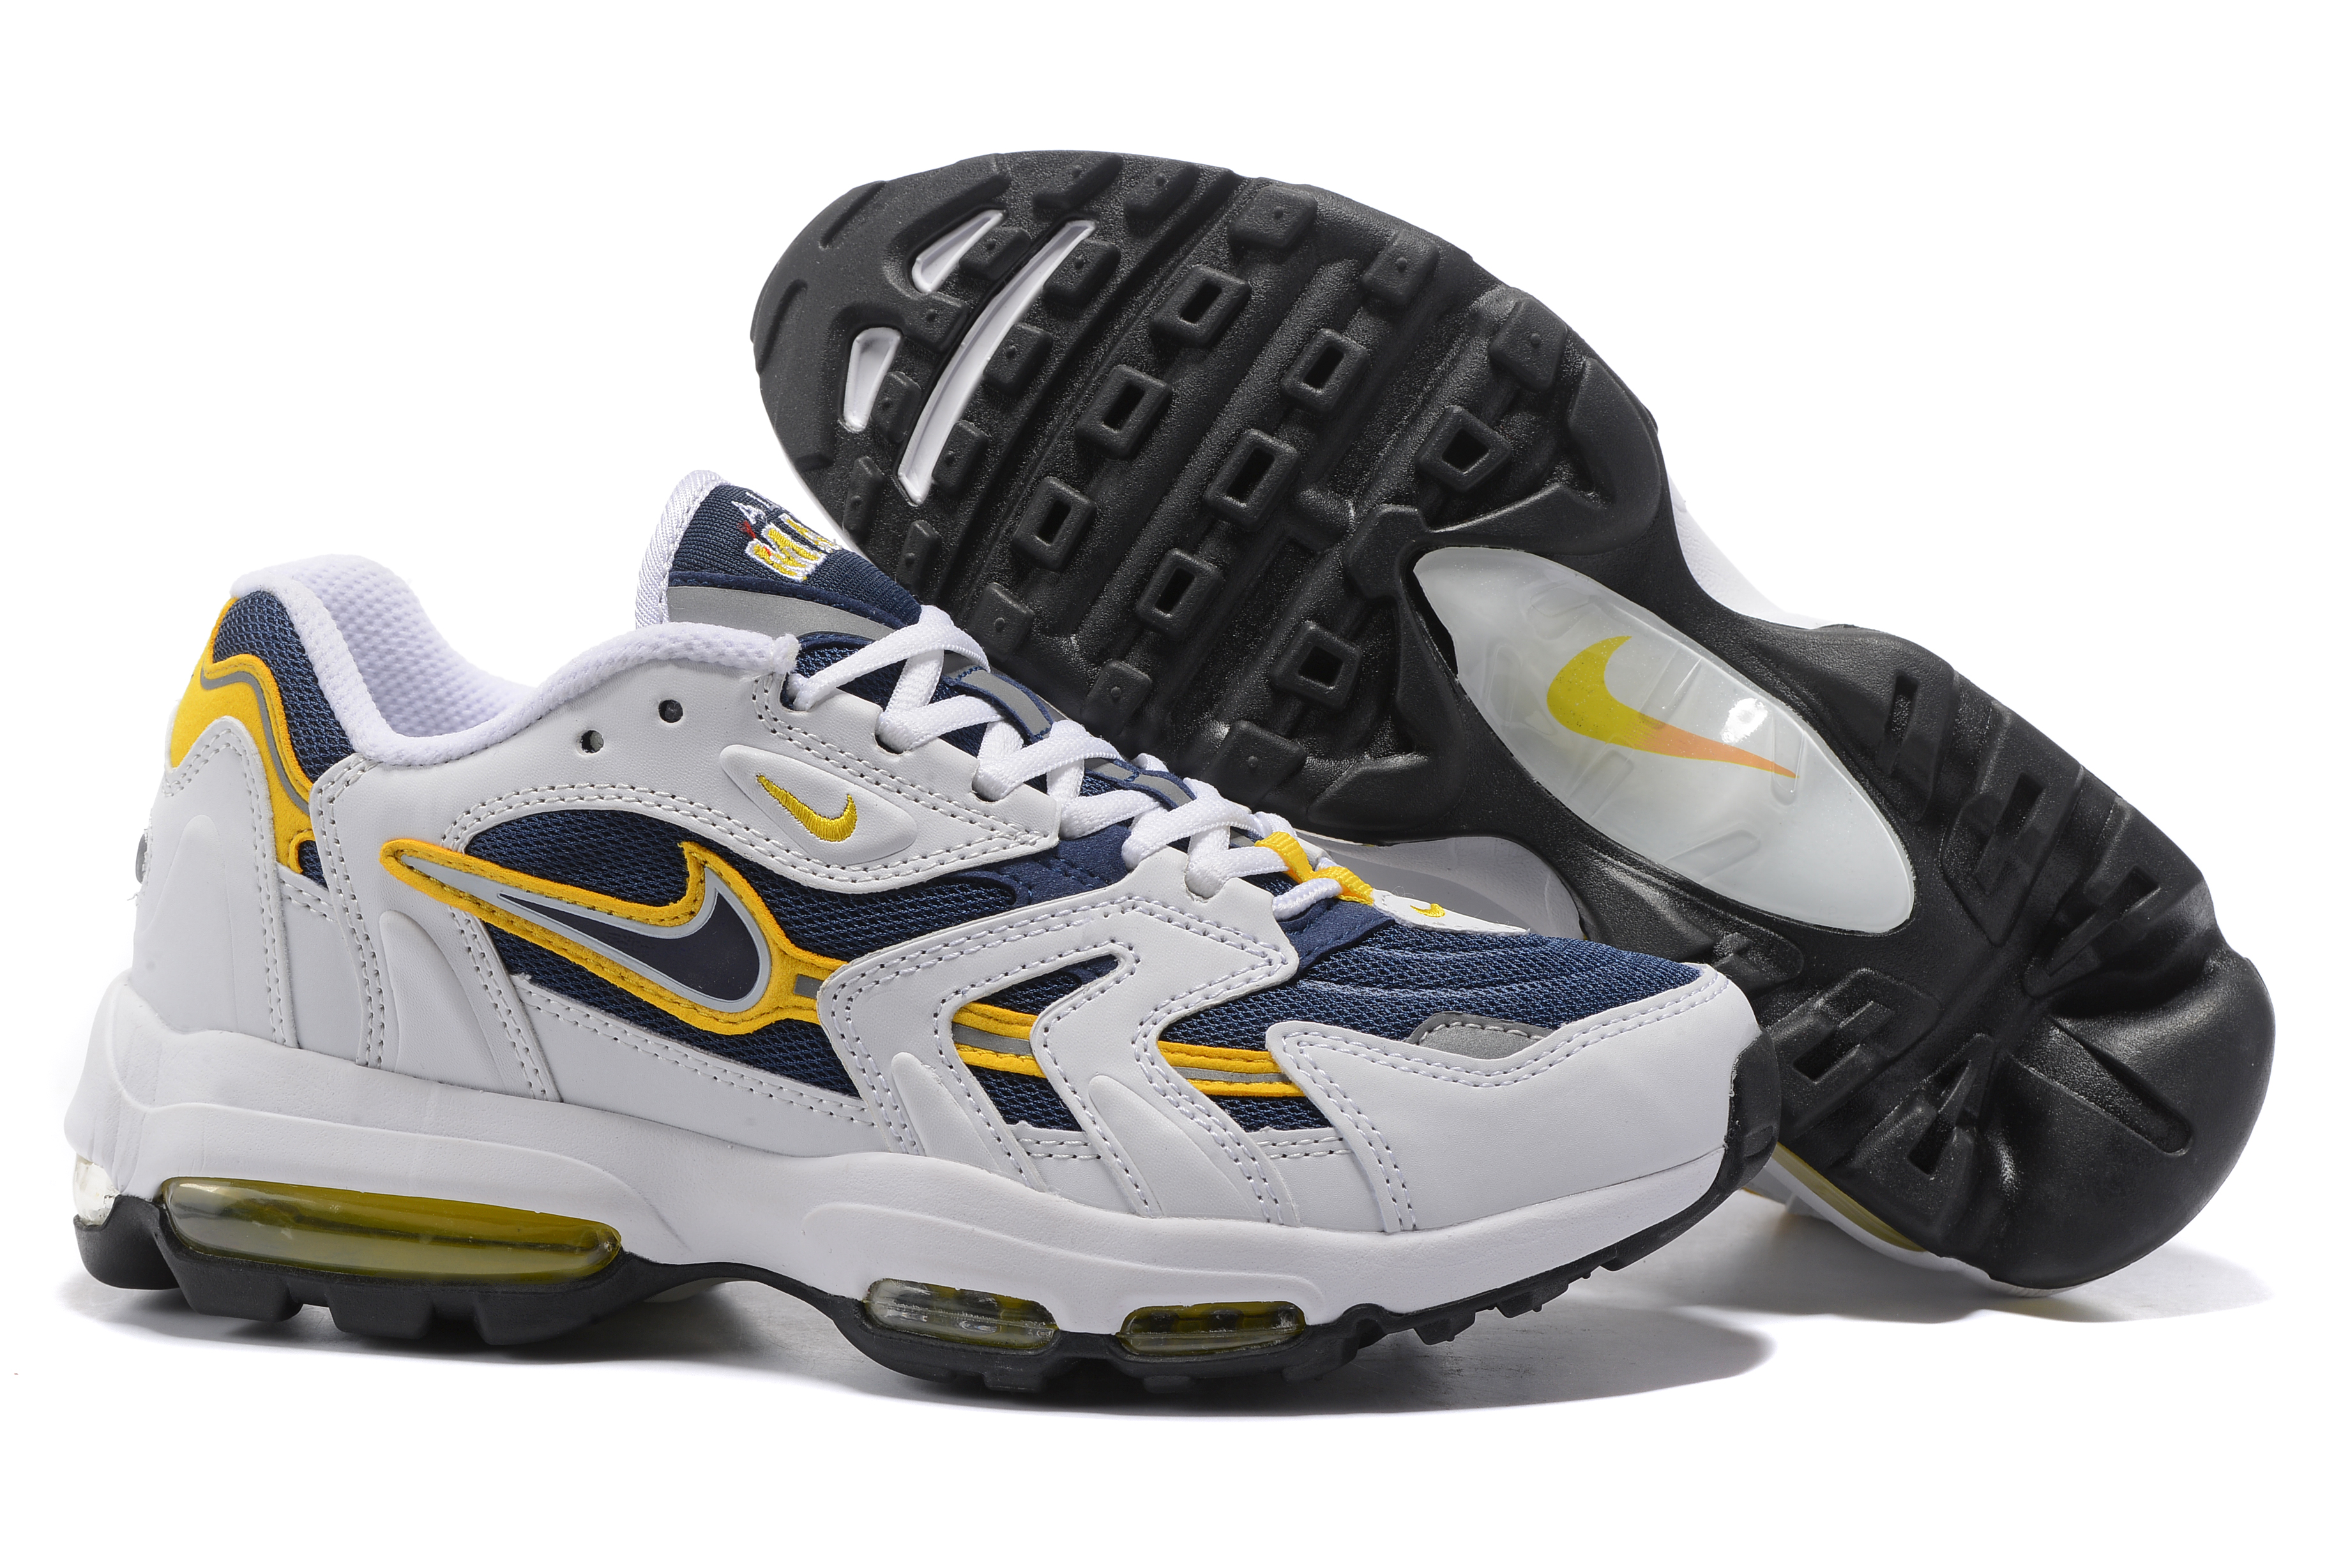 Nike Air Max 96 White Blue Yellow Shoes